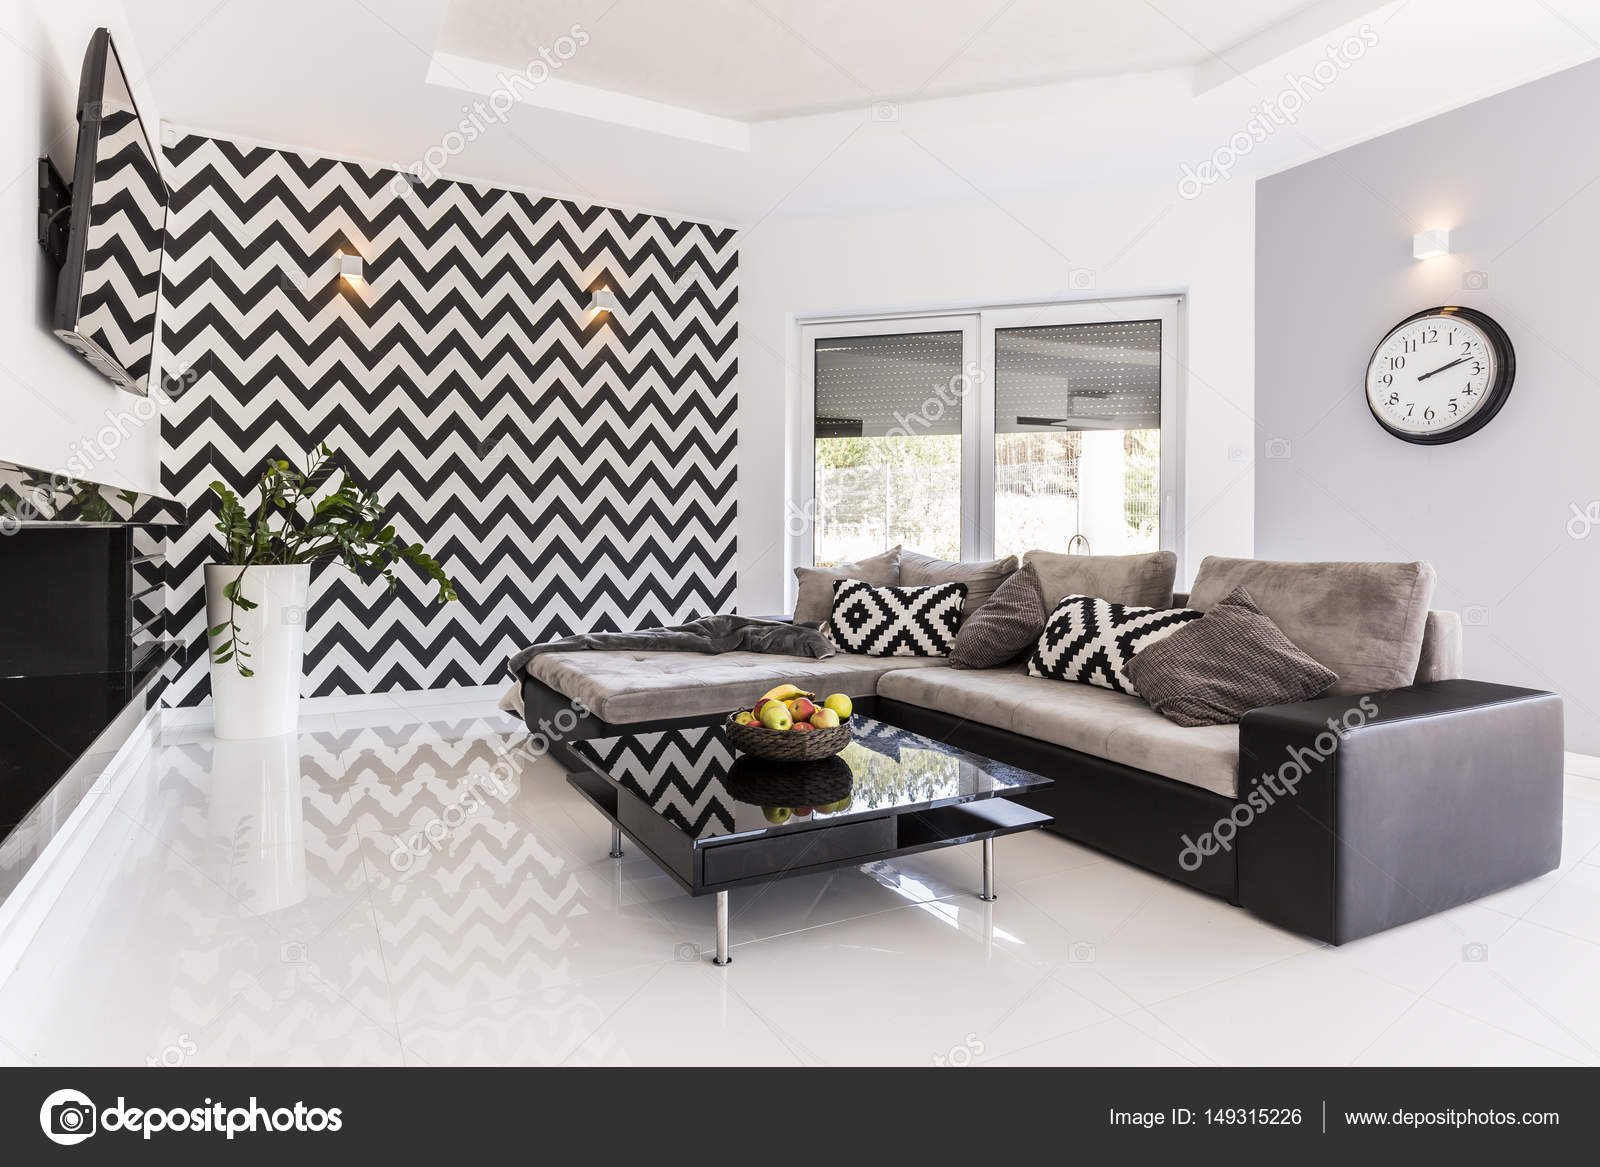 Posh woonkamer in zwart-wit — Stockfoto © photographee.eu #149315226